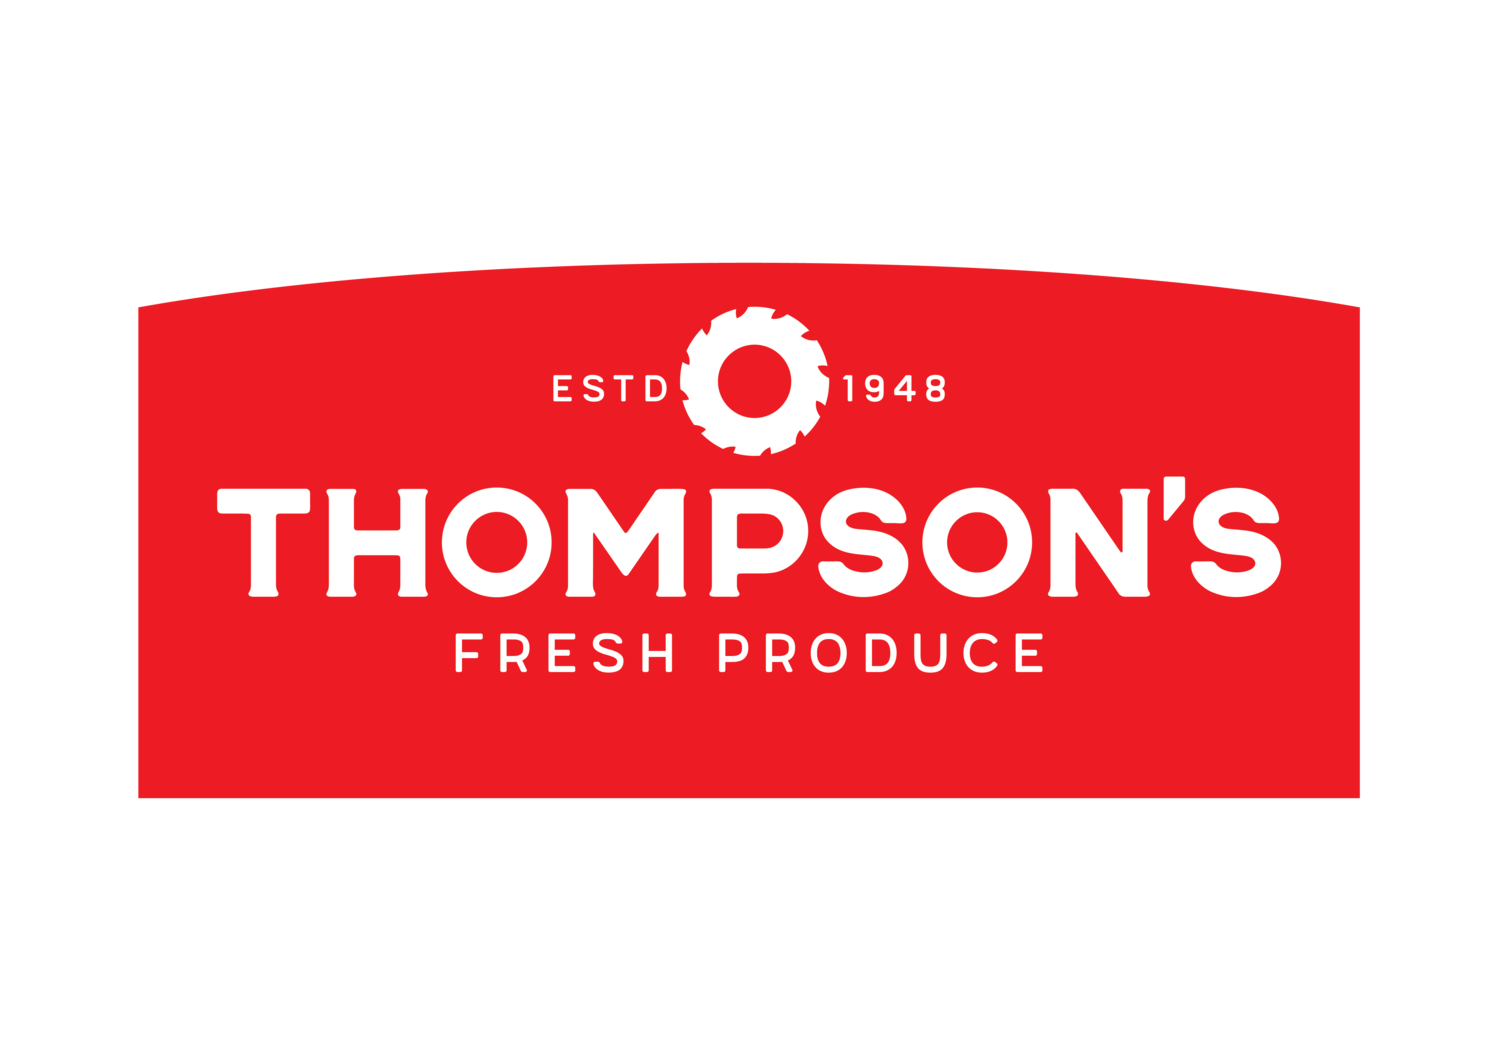 George Thompsons Ltd